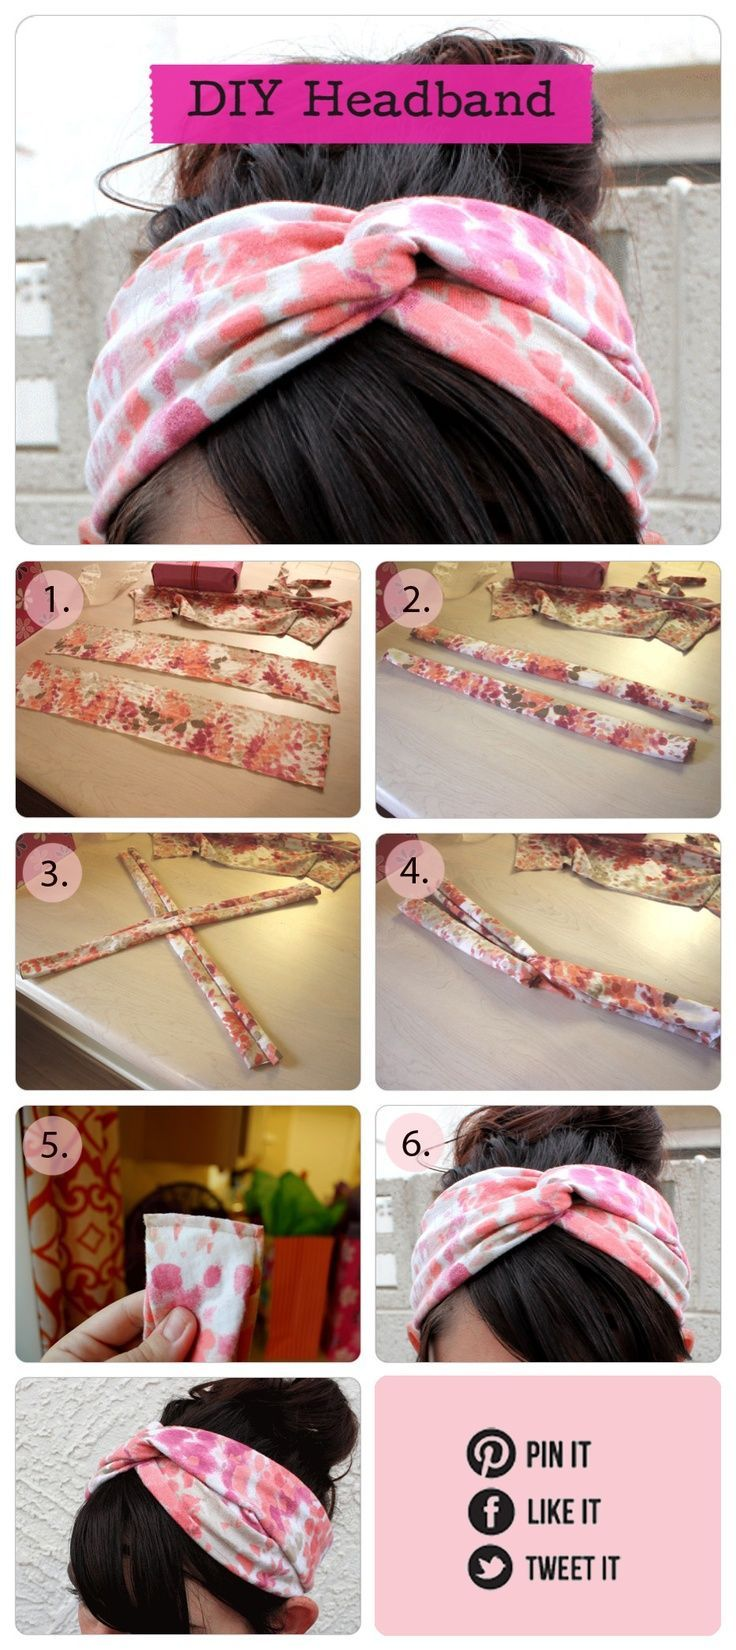 27 Most Popular DIY Fashion Ideas Ever, DIY Twisted Turban Headband